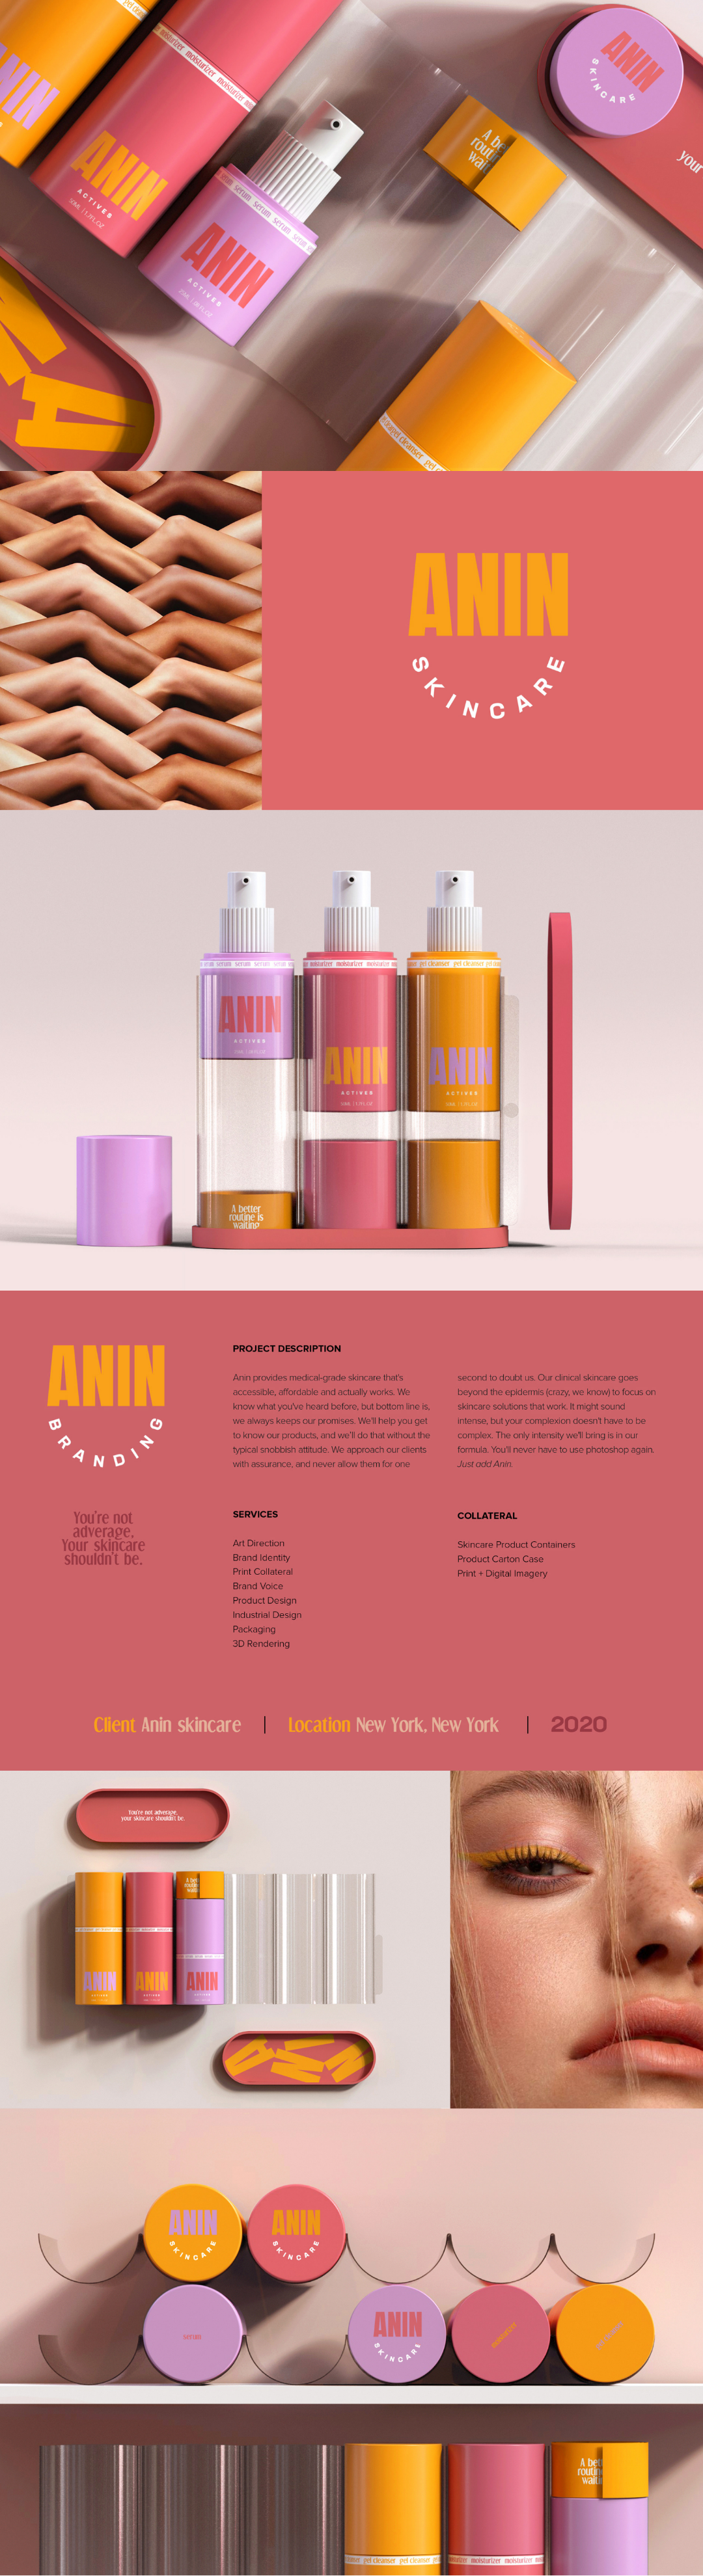 Branding,Packaging,Graphic Design